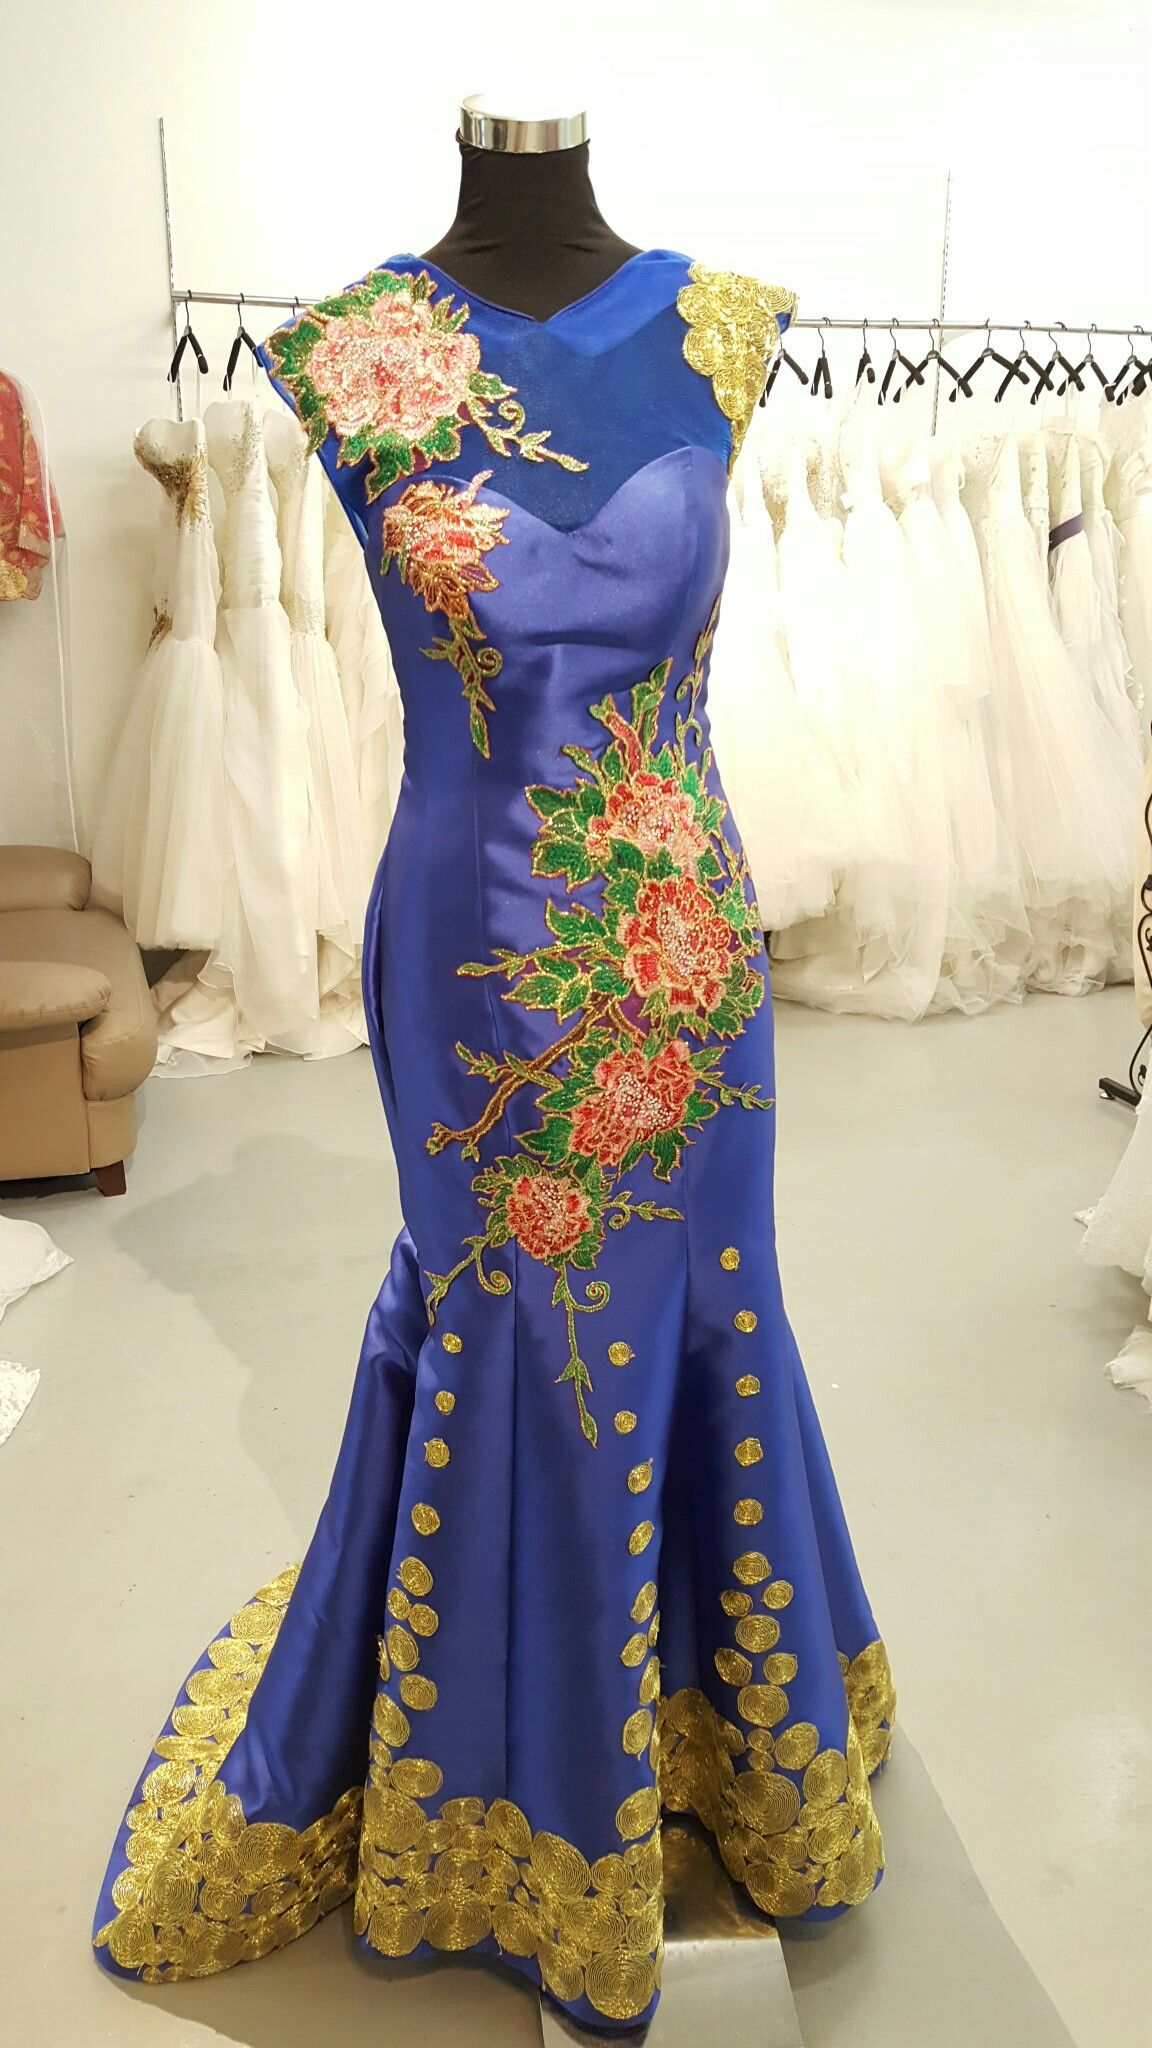 Royal blue wedding oriental cheongsam with gold embroidery couture